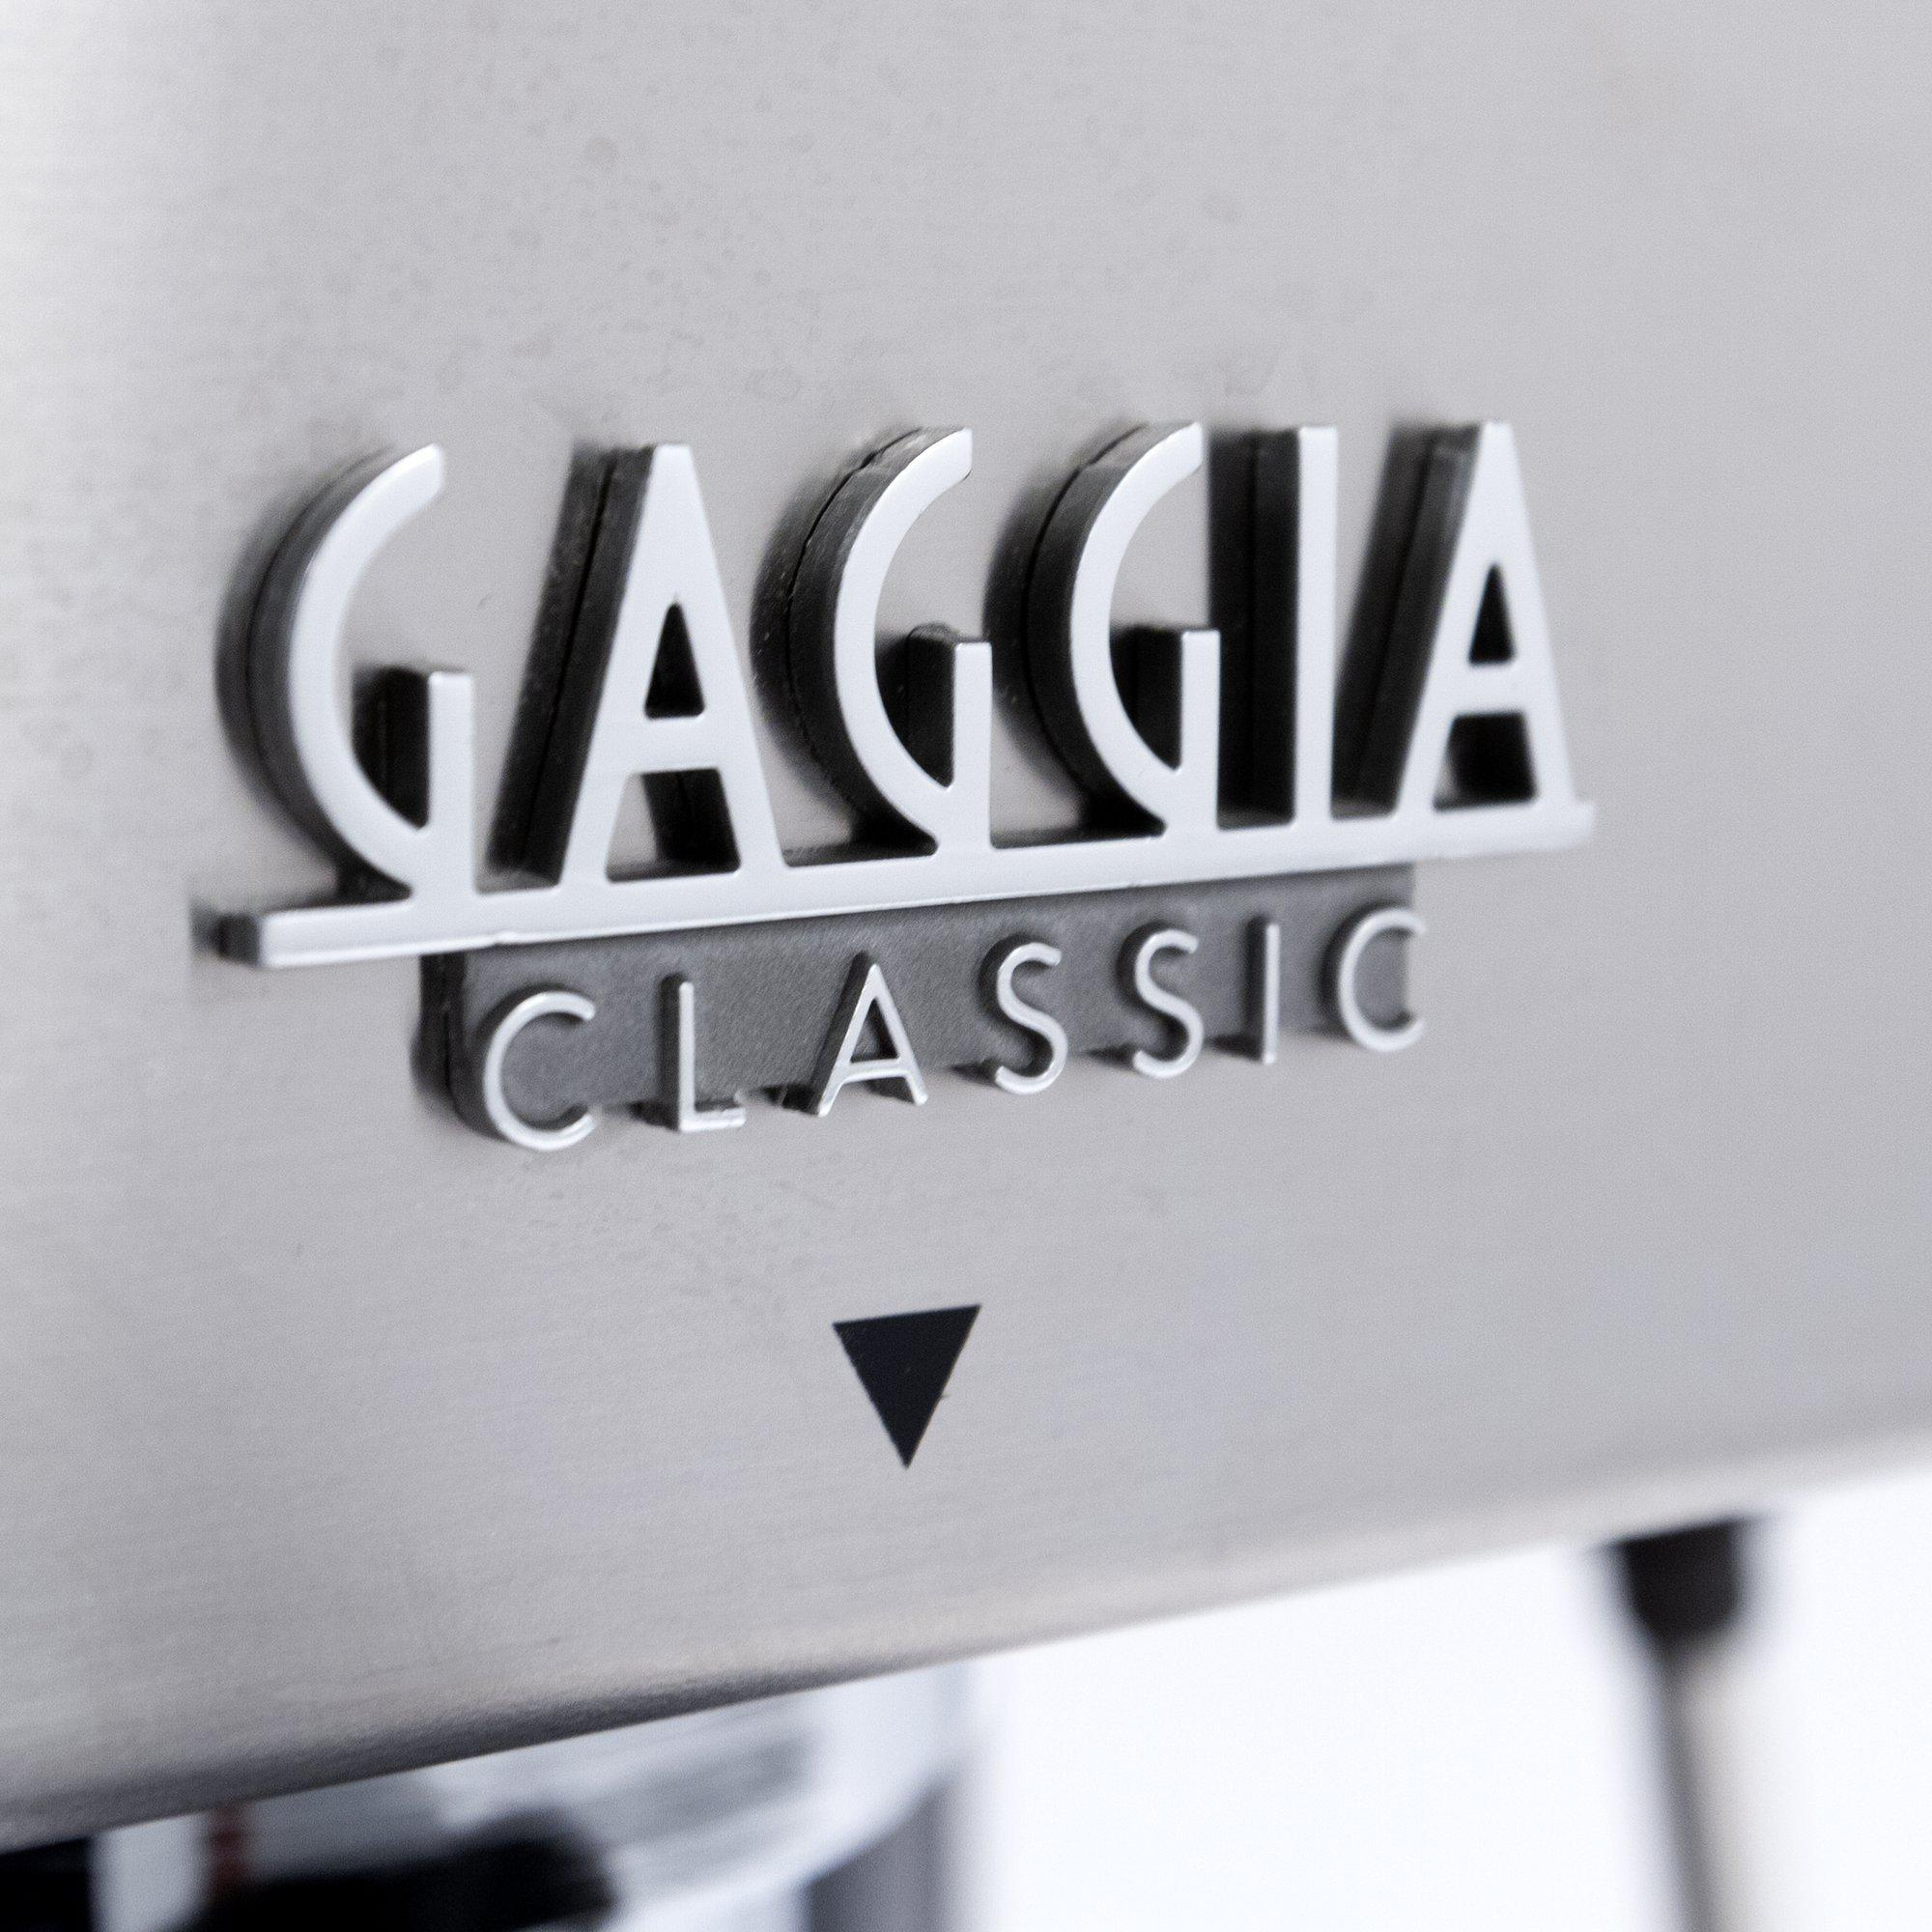 Gaggia Classic Pro Canada Logo and Housing